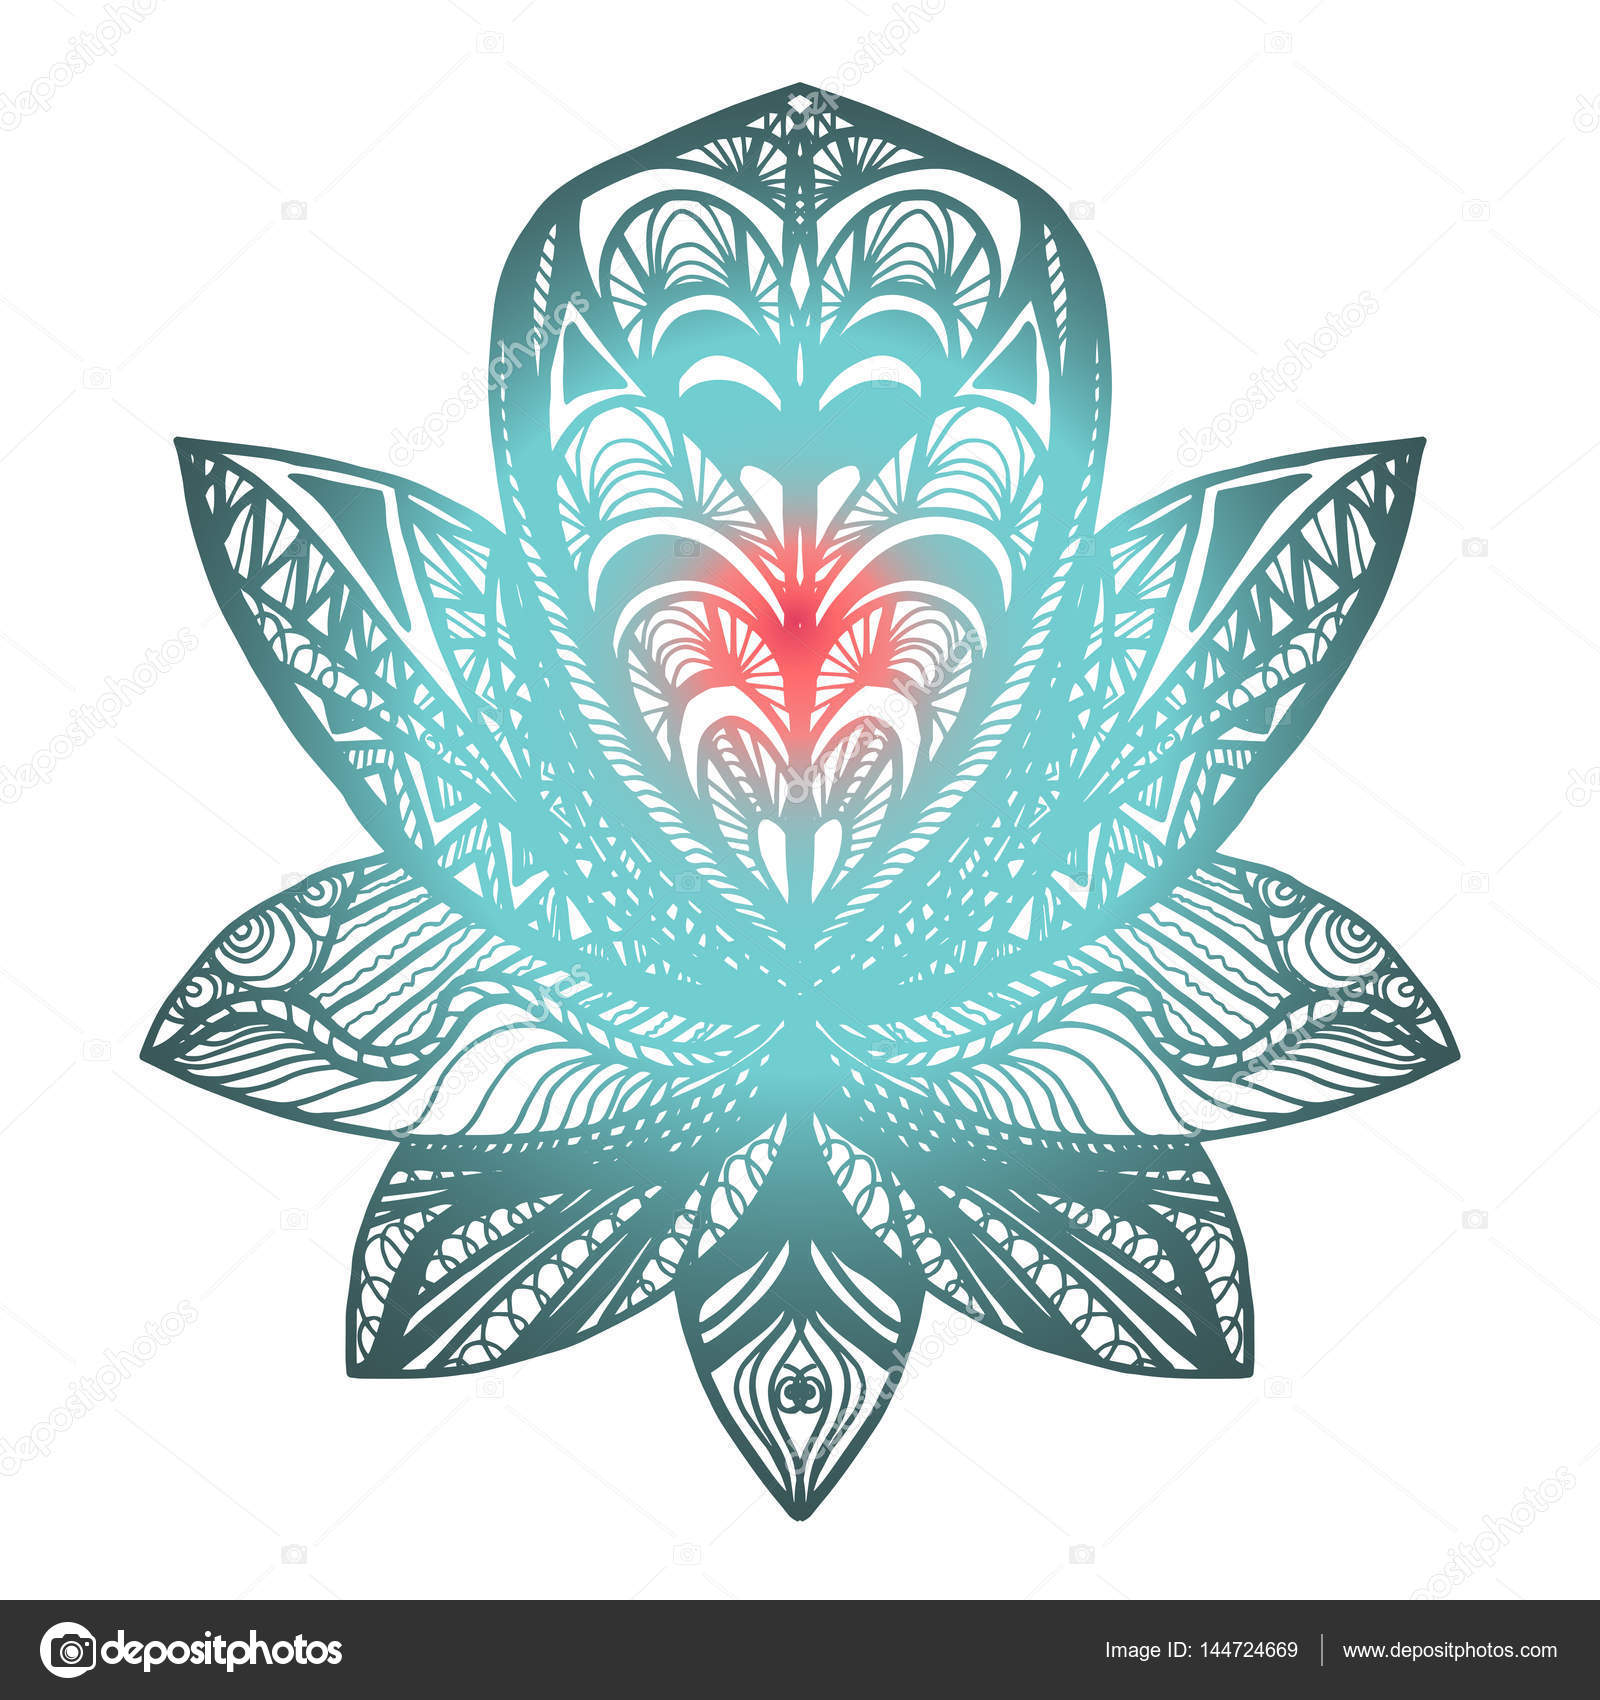 Flower lotus tattoo stock vector barsrsind 144724669 flower lotus magic symbol for print tattoo coloring bookfabric t shirt cloth in boho style tribal lotus design vector vector by barsrsind izmirmasajfo Images